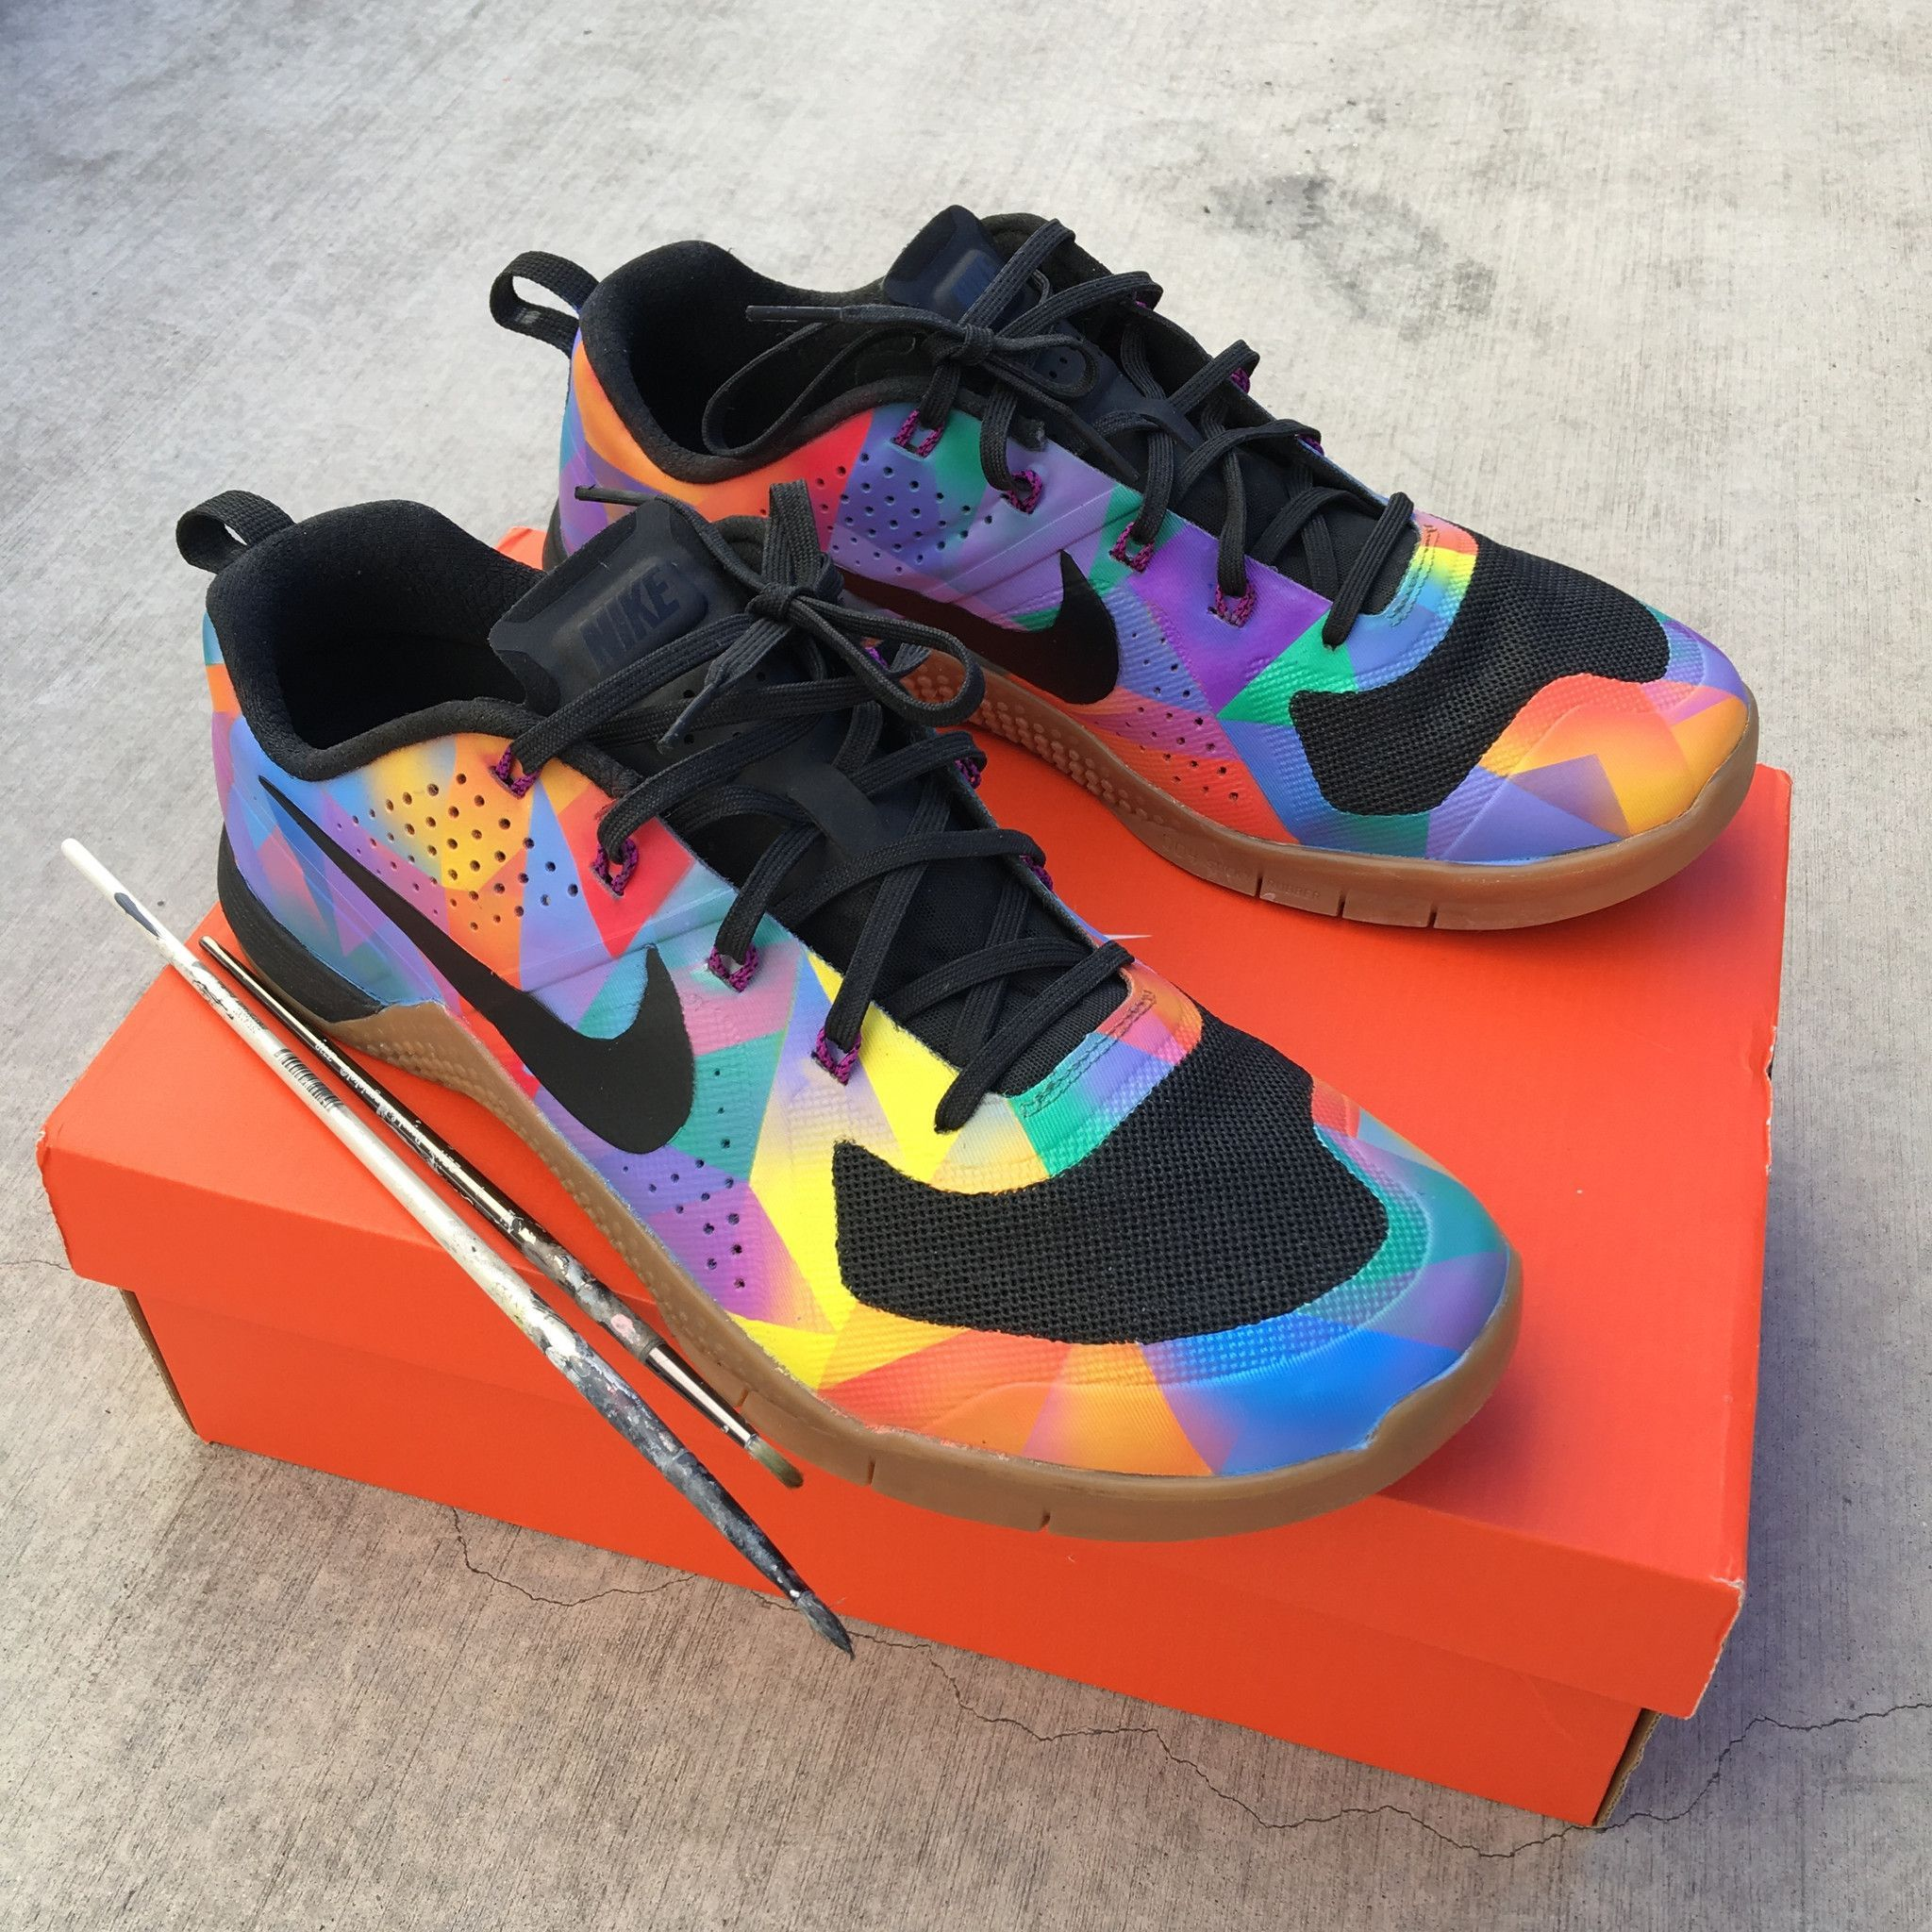 online retailer 76e01 1a43a These Nike Metcon 2 Sneakers have been hand painted to featured a colorful  geometric pattern all over the shoes. These Sneakers are one-of-a-kind  completely ...